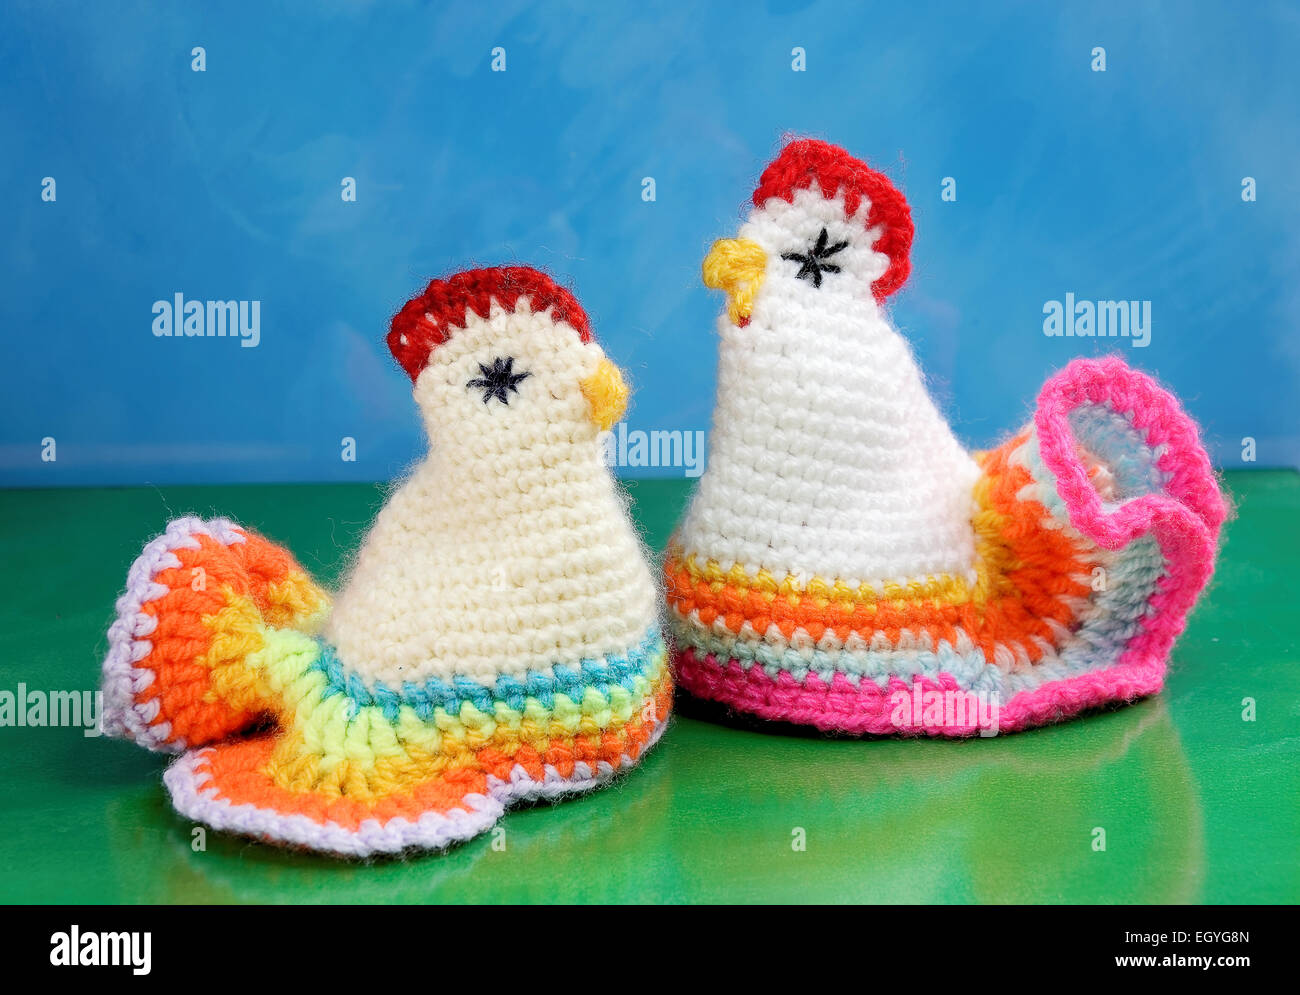 Chicken Cosy Stock Photos & Chicken Cosy Stock Images - Alamy